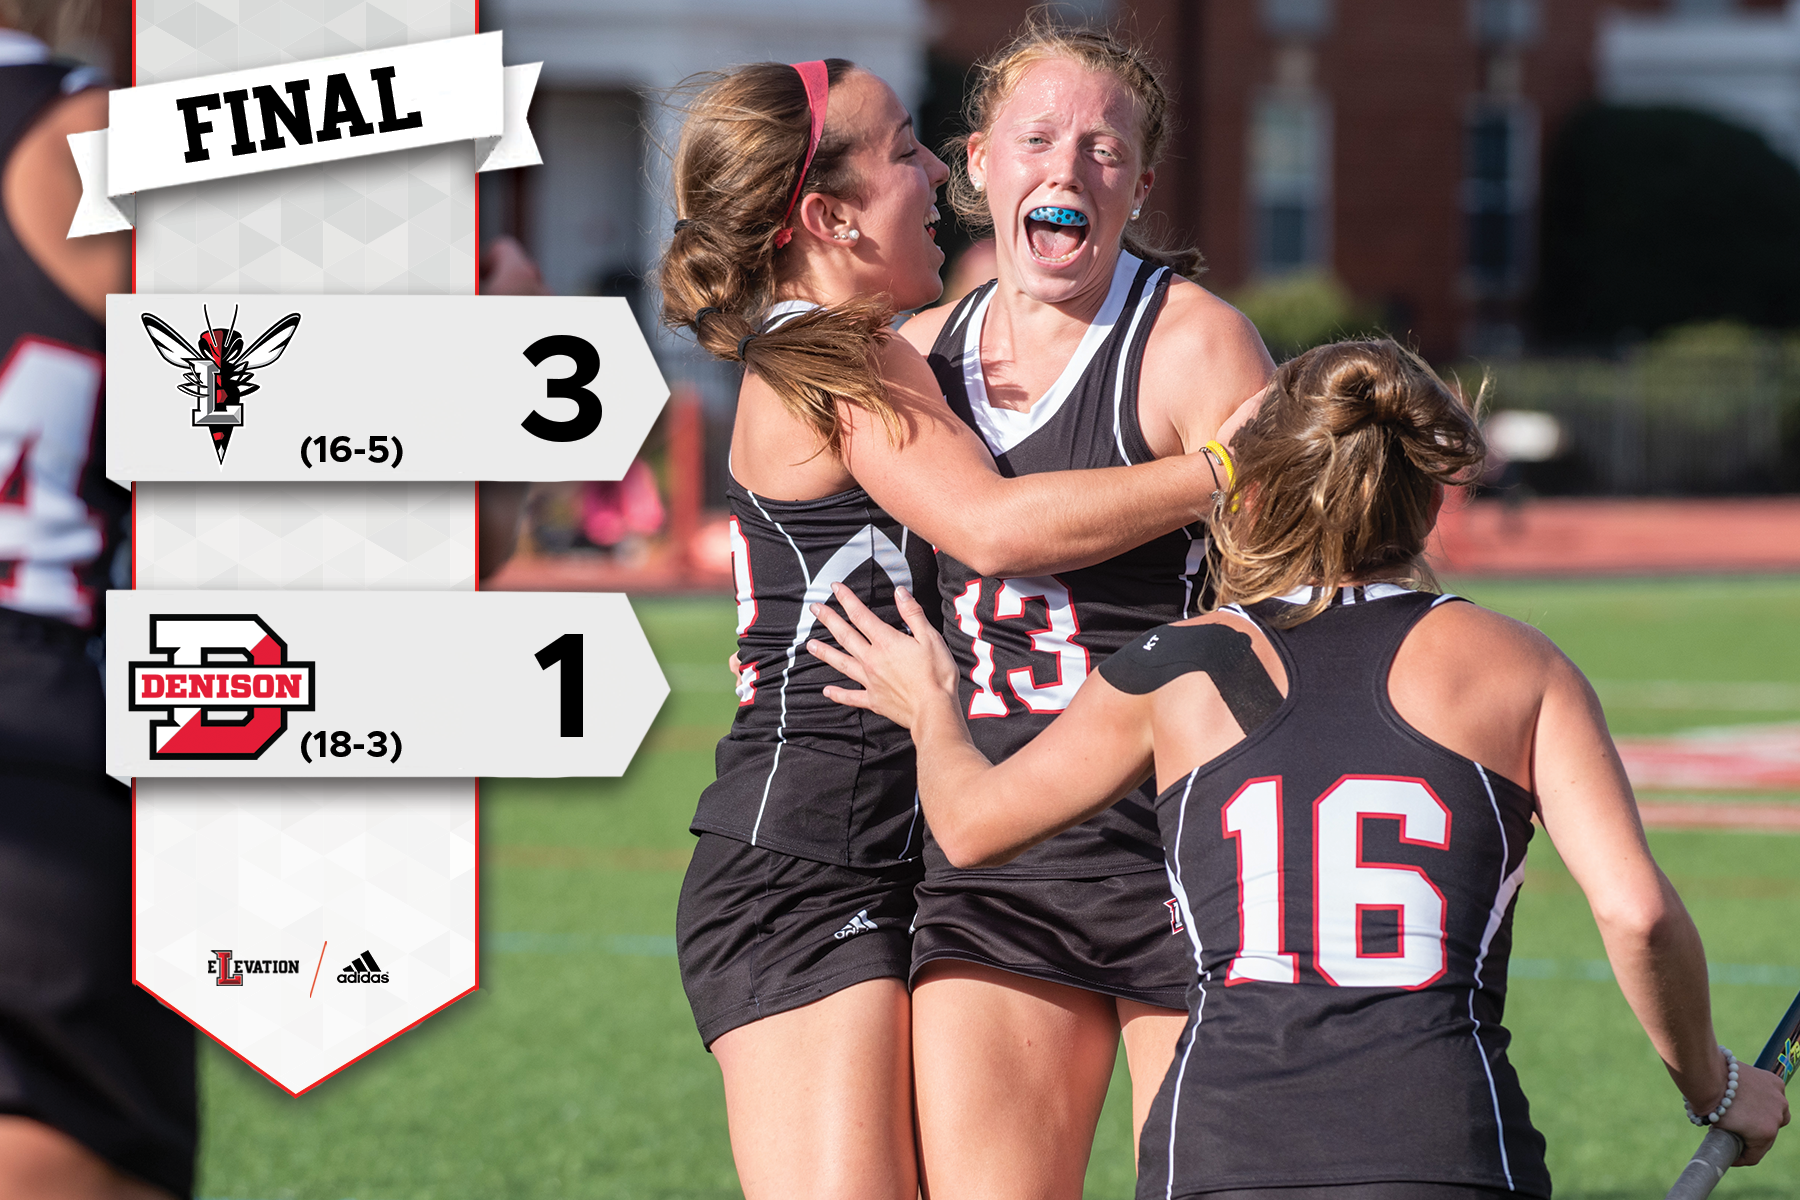 Field hockey players celebrate a goal. Graphic showing 3-1 final score and team logos.